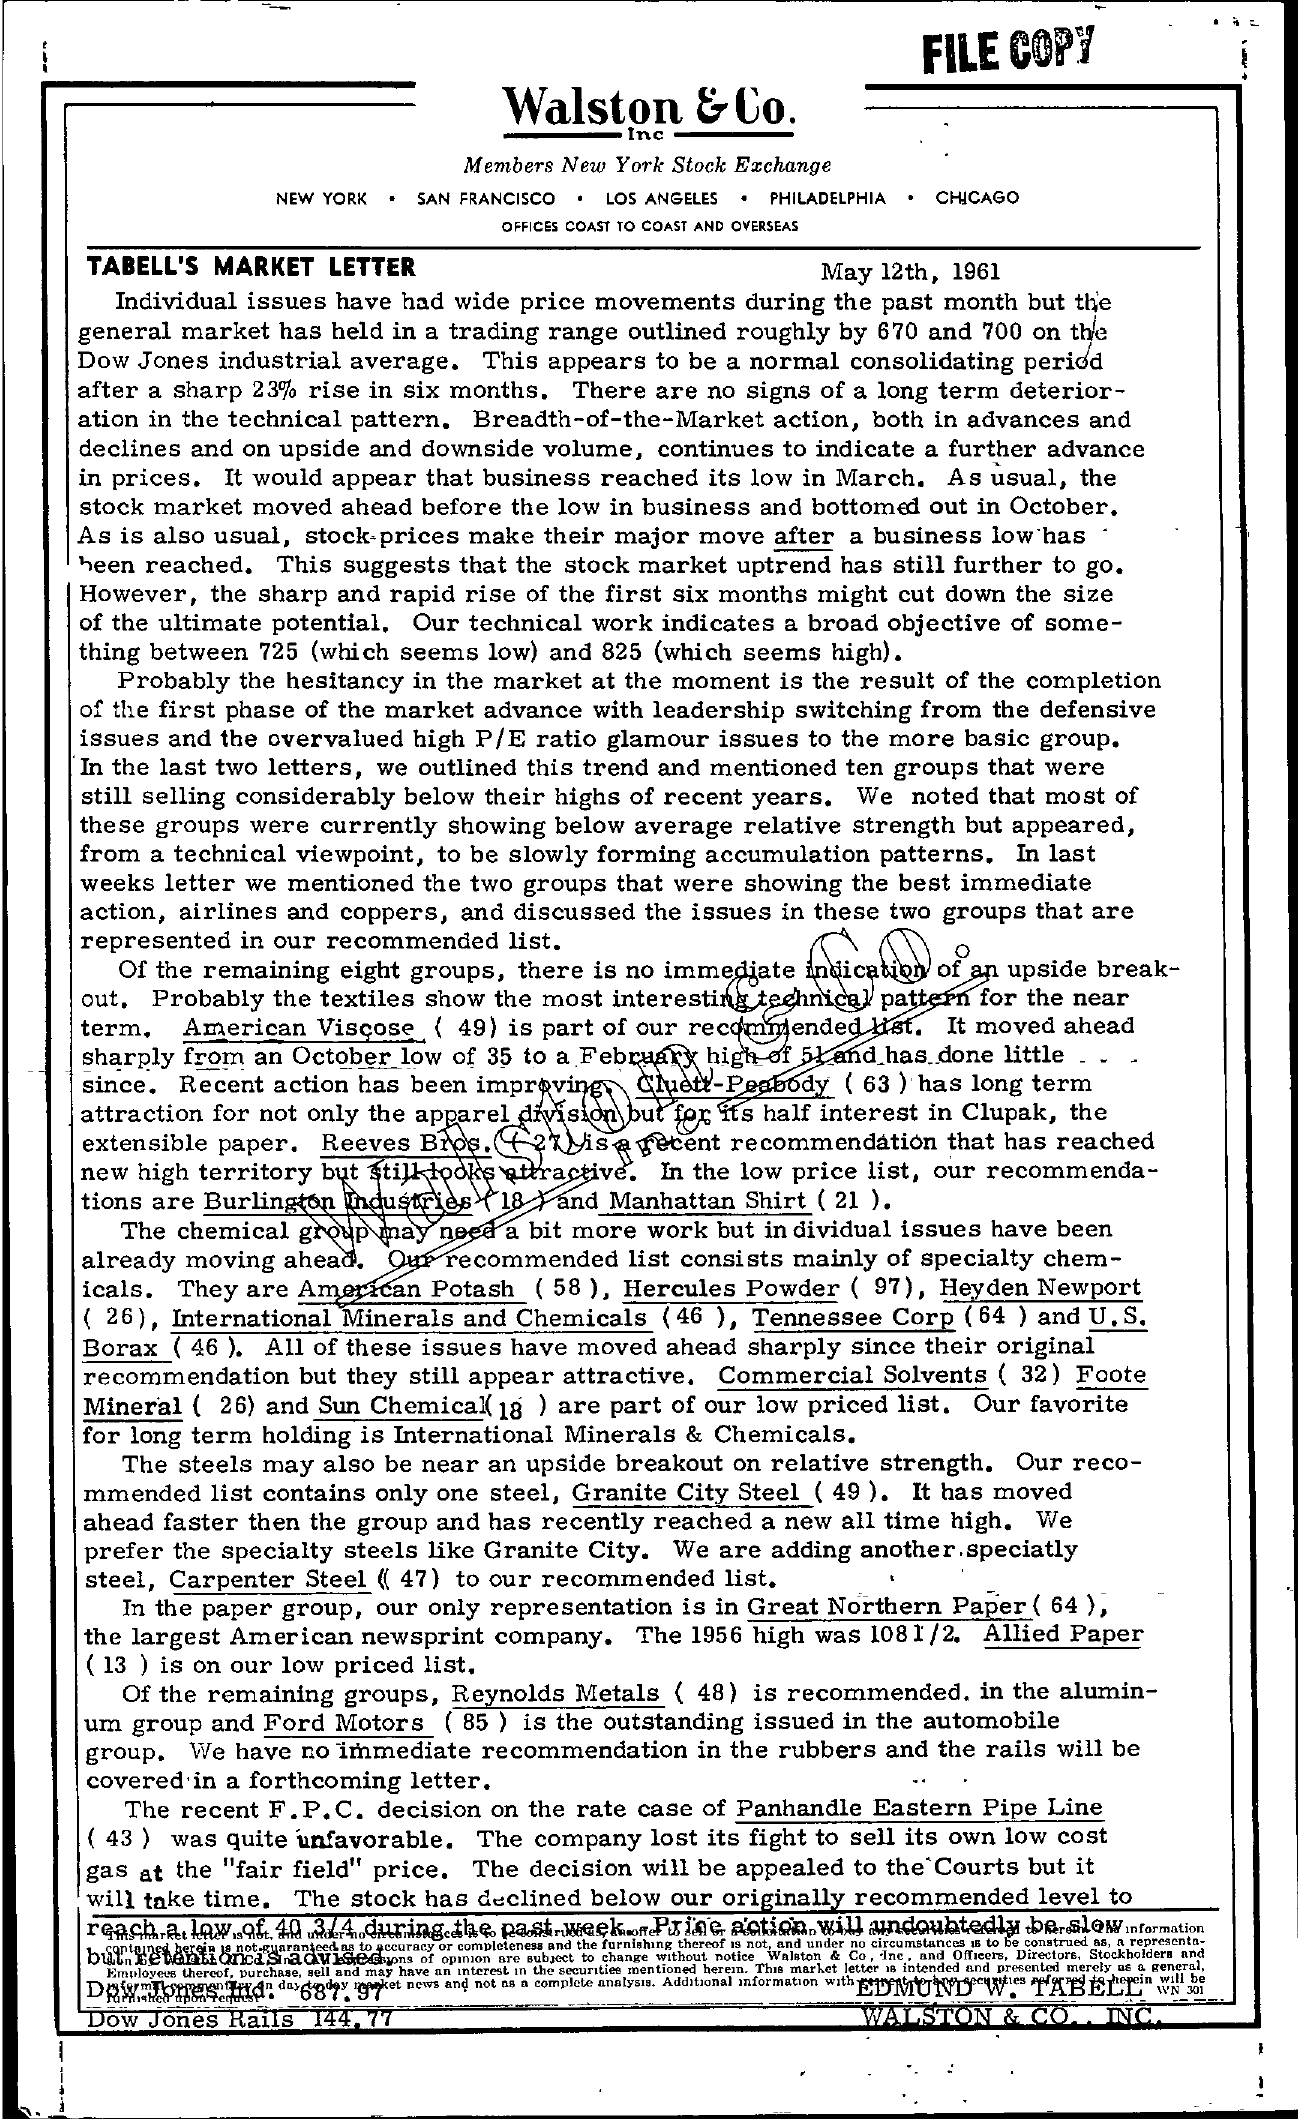 Tabell's Market Letter - May 12, 1961